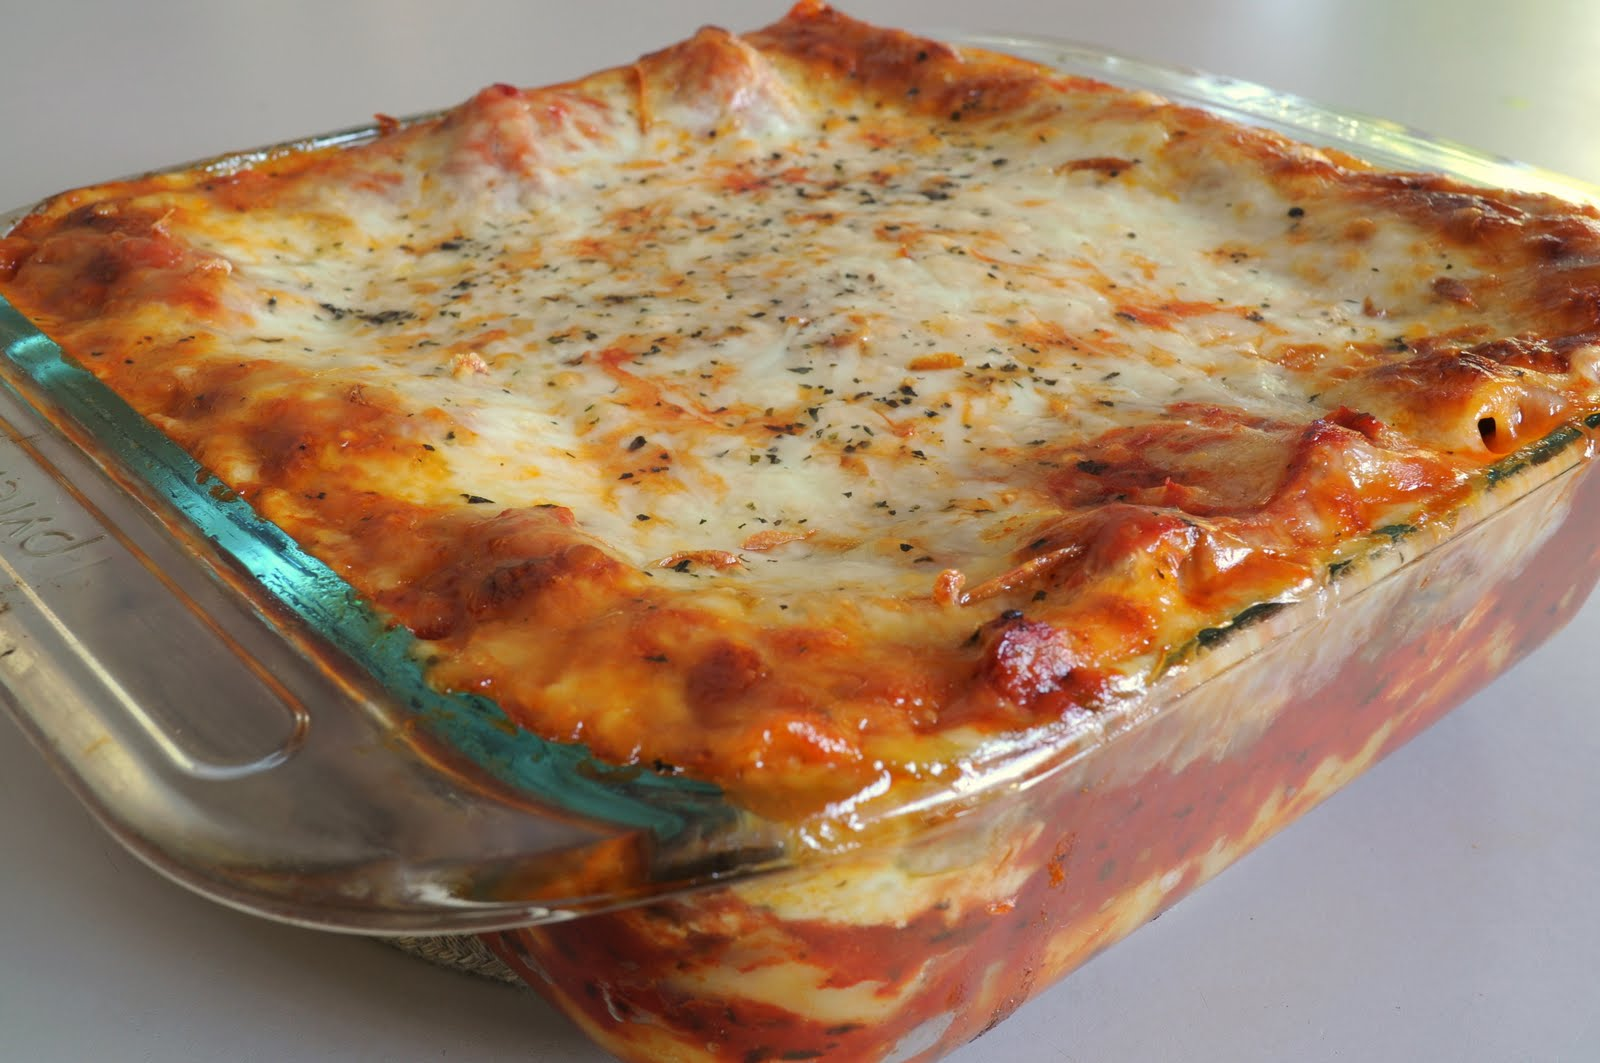 Food from the World: Lasagna